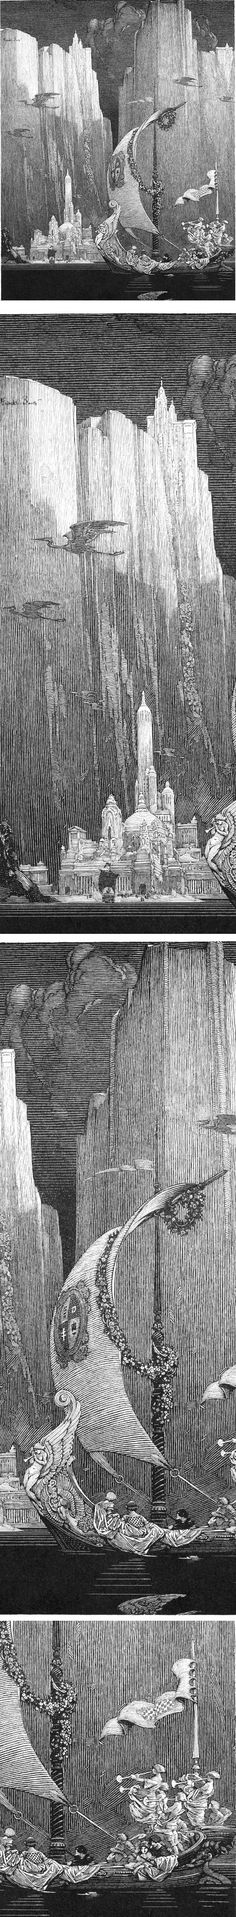 Echoes, ink drawing by Franklin Booth